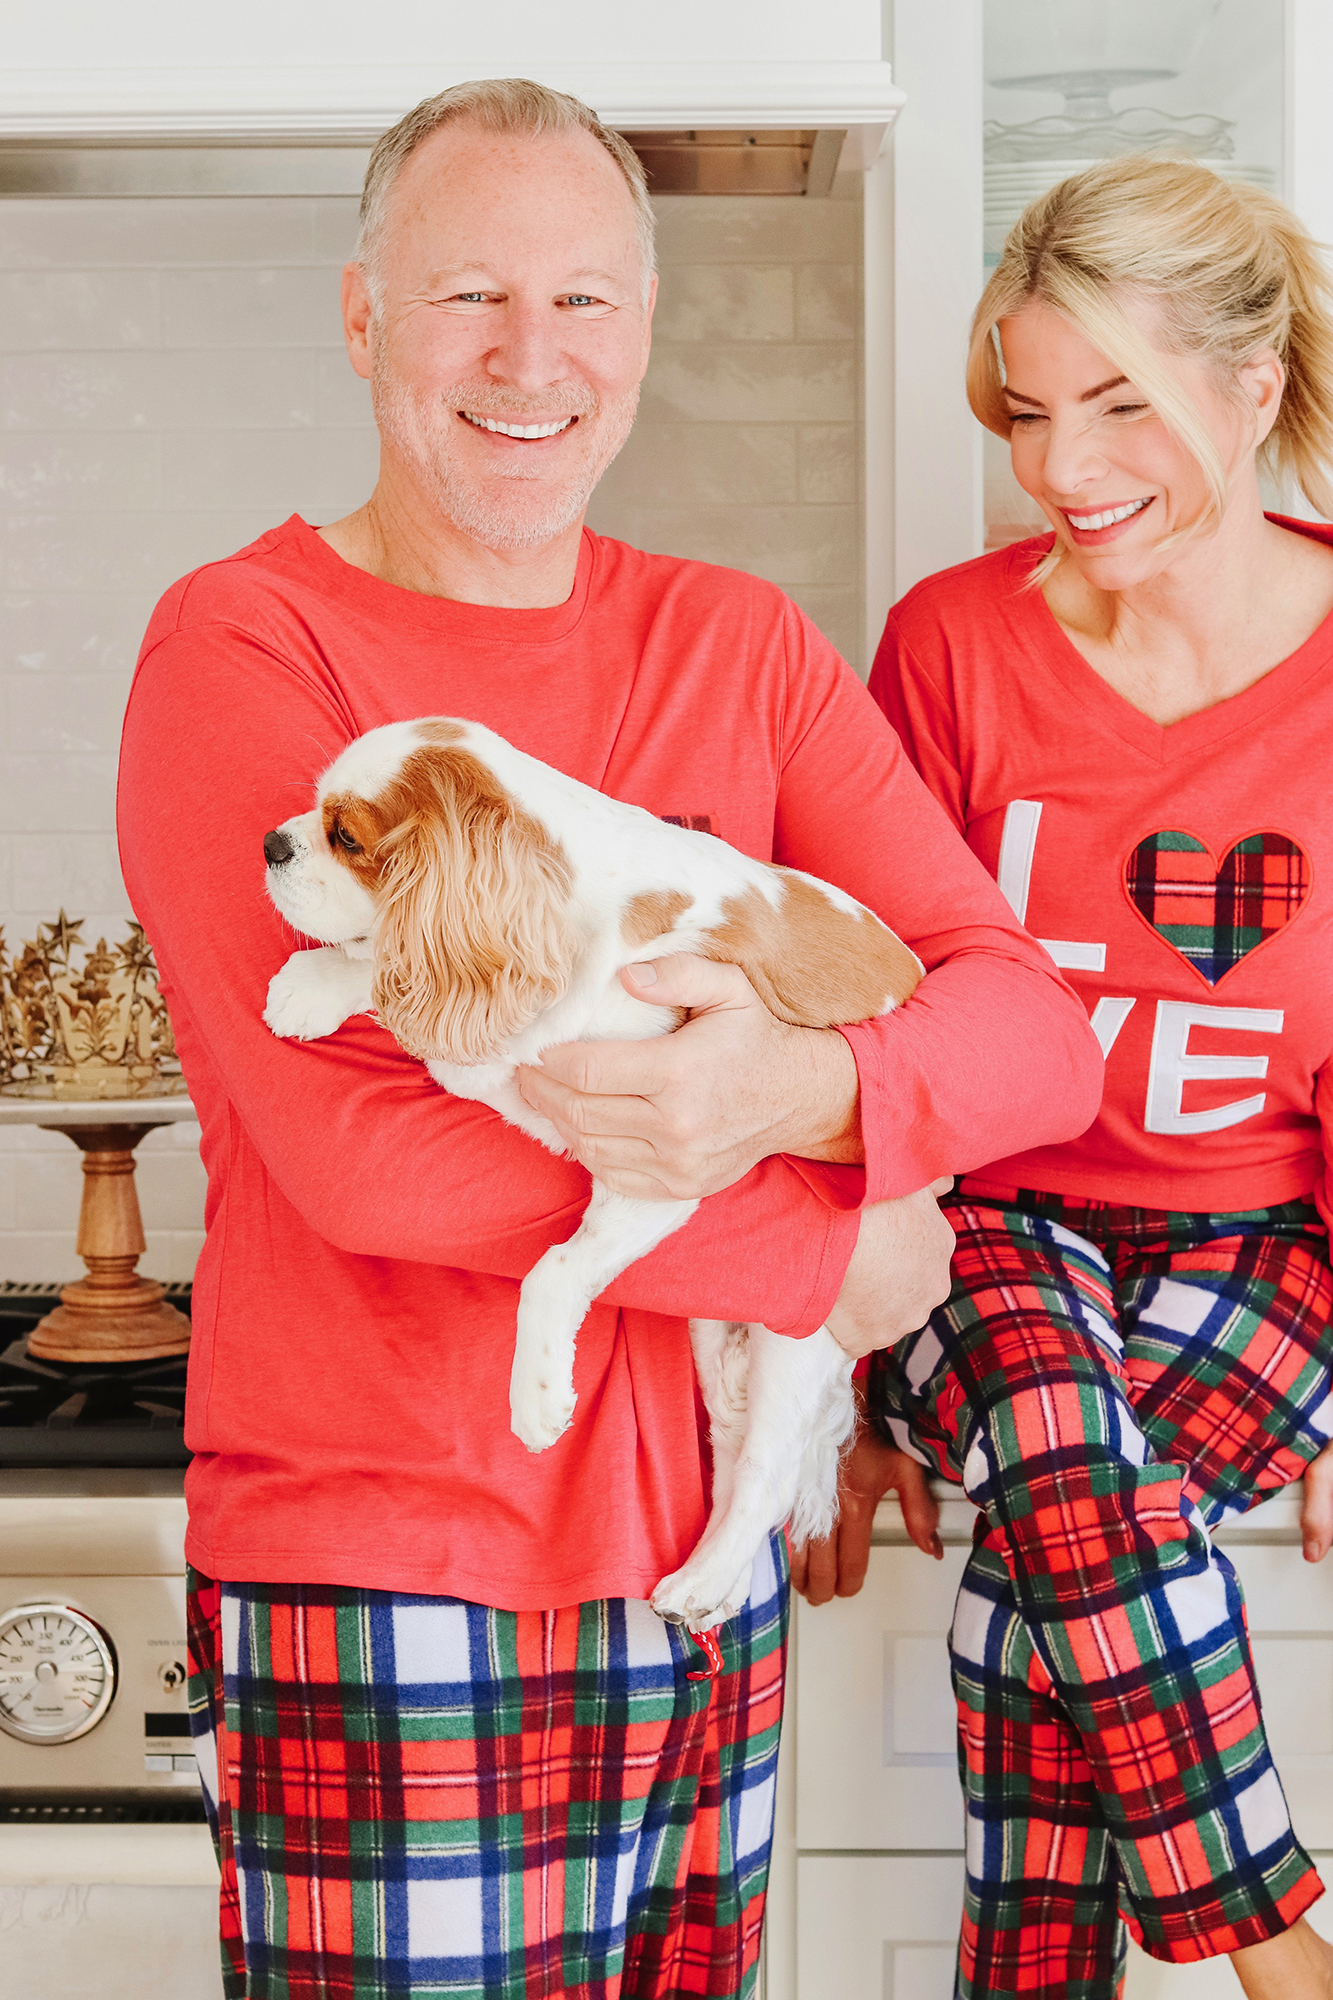 Surgery Update & Cozy Holiday PJs with Jeff - All about my explant surgery & why I'm doing it. Coziest matching pjs under $20 are linked here too!